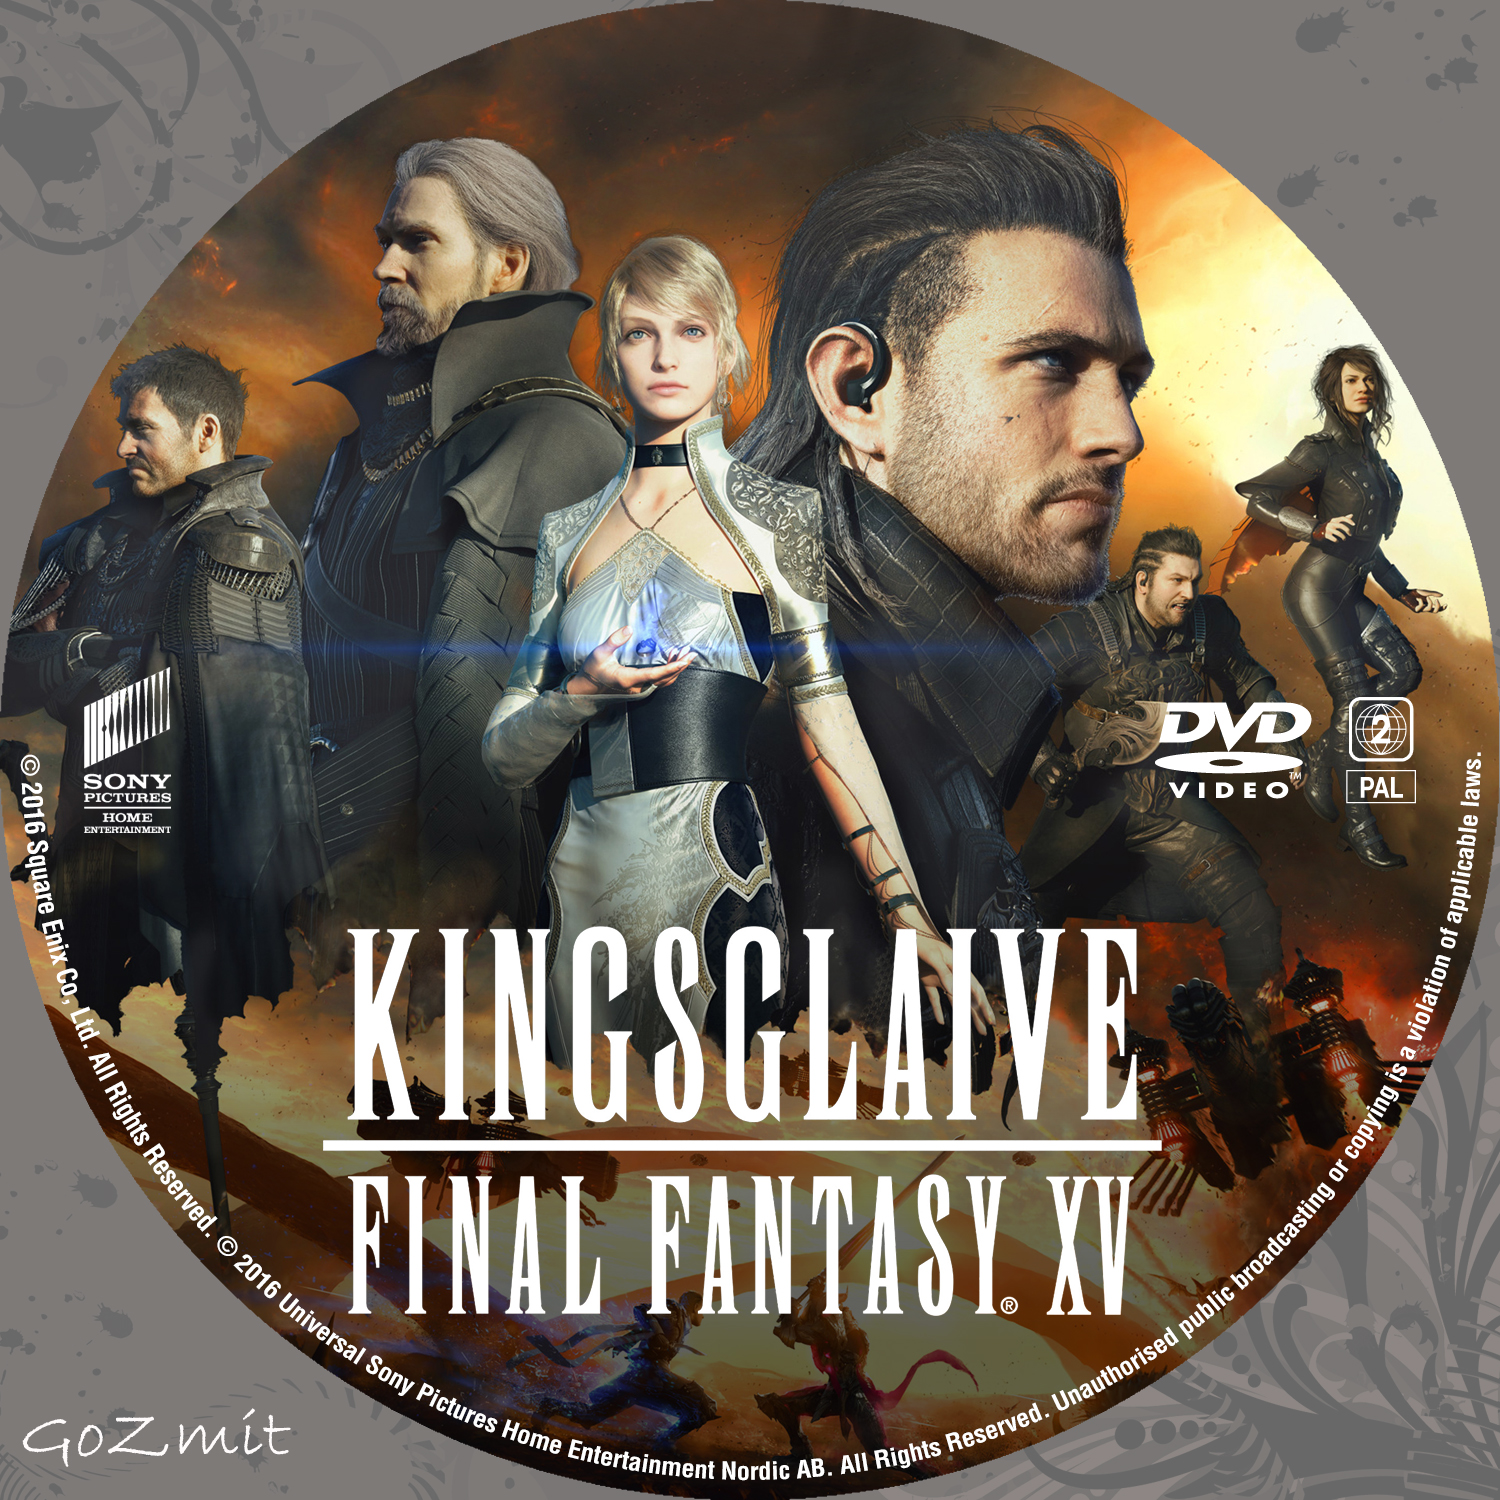 Book Cover Fantasy Xv : Covers box sk kingsglaive final fantasy xv nordic